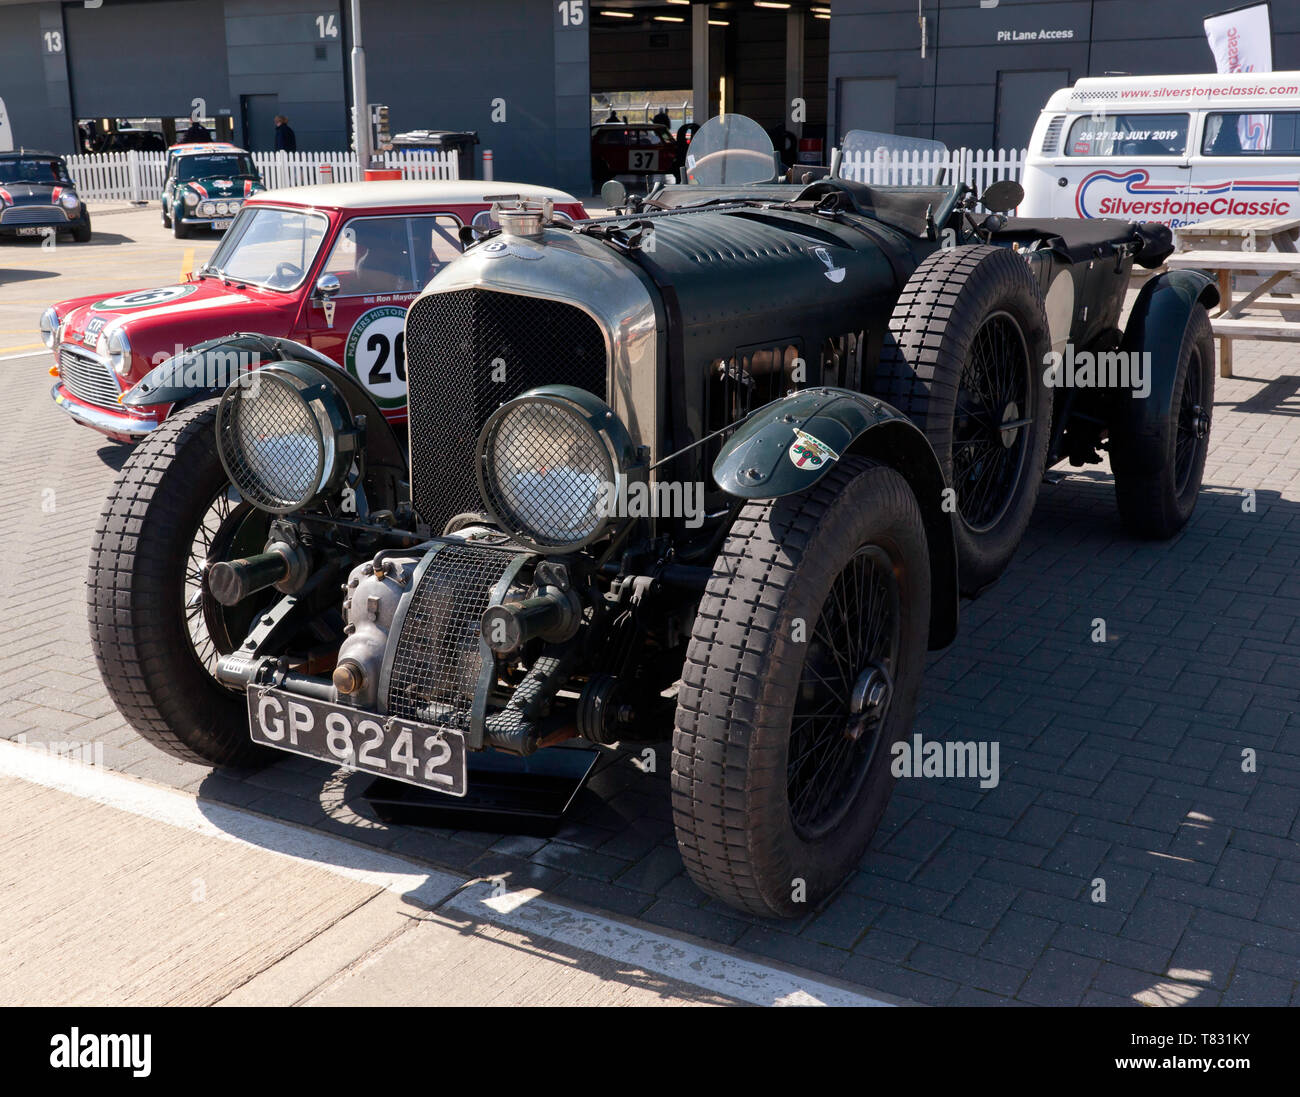 A Green, 1931 Pre-War  Bentley Blower  on display,  in front of the Wing, during the 2019 Silverstone Classic Media Day Stock Photo